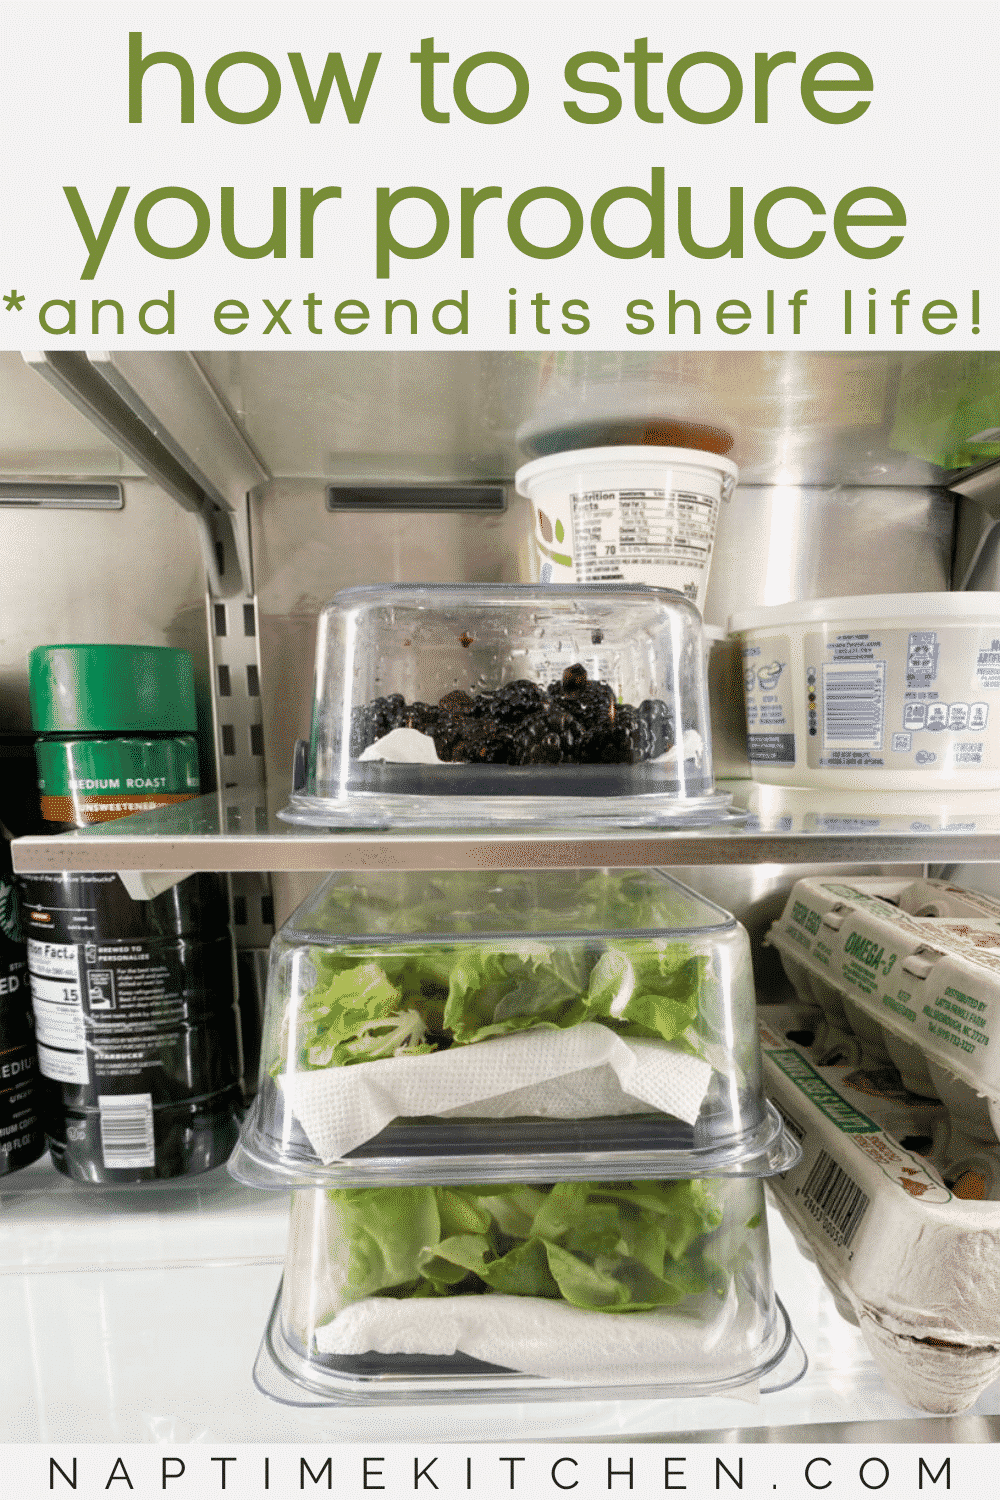 How to Store Produce (Berries & Greens)